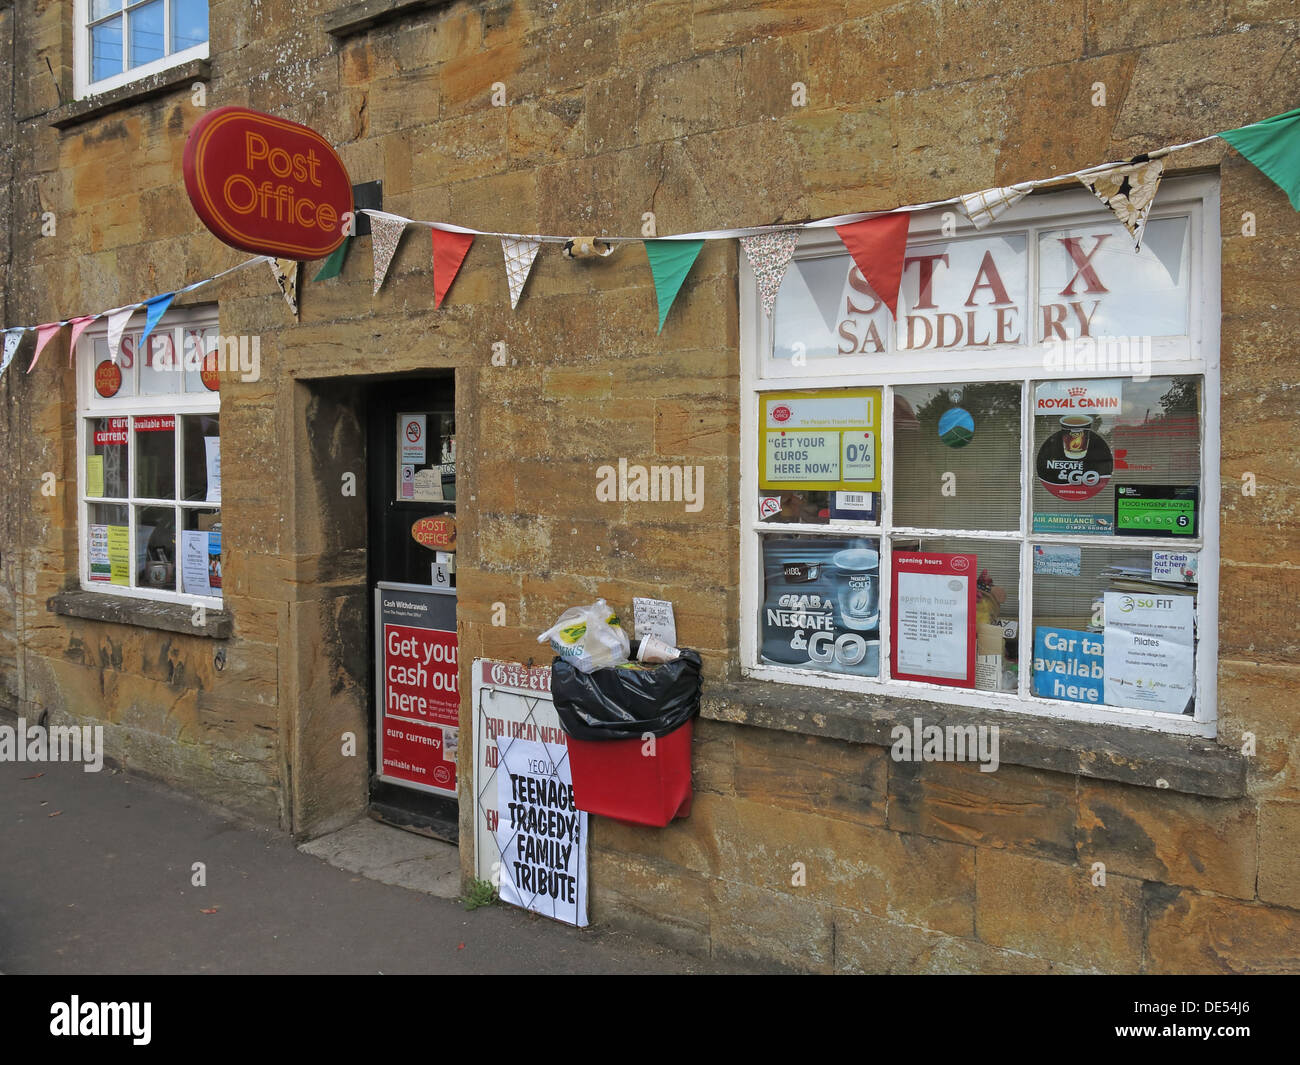 South,Somerset,England,UK,TA15,6XD,rural,threatened,pos,pot,ofice,English,British,GPO,typical,sub,main,small,community,centre,of,the,TA15 6XD,Post Office,post office counters,GoTonySmith,@HotpixUK,Buy Pictures of,Buy Images Of,Images of,Stock Images